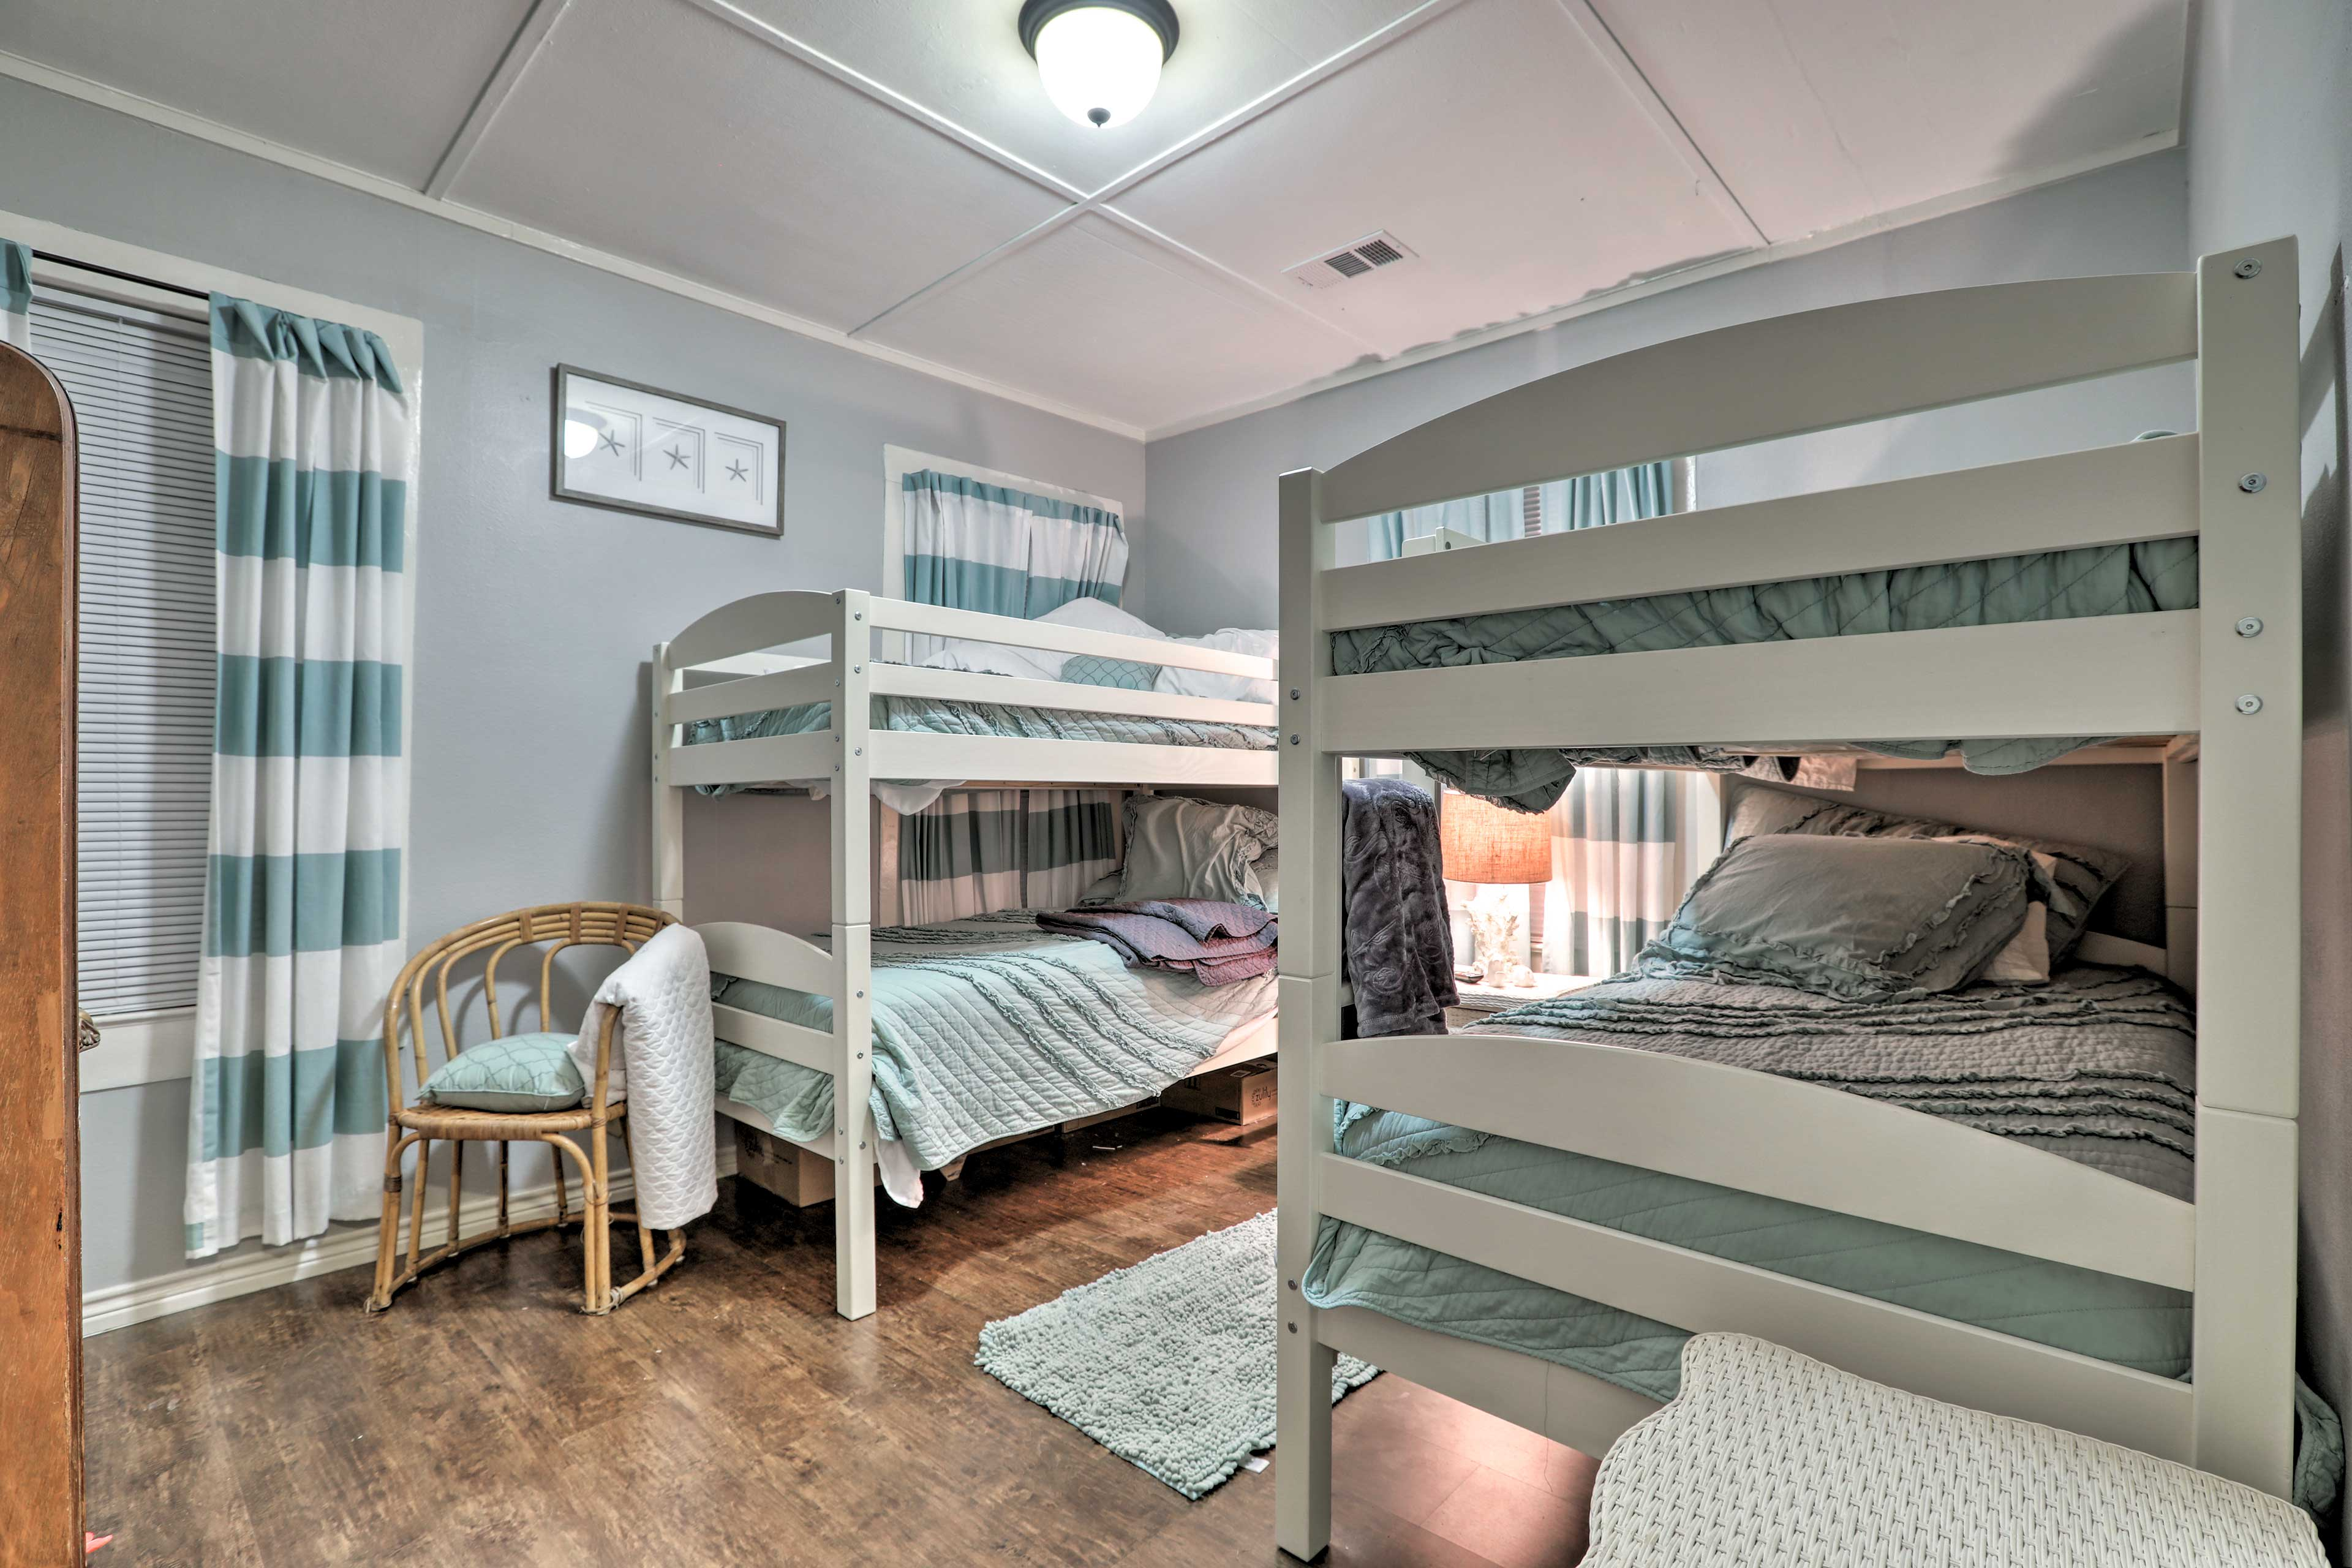 The second bedroom provides 2 twin-over-twin bunk beds.